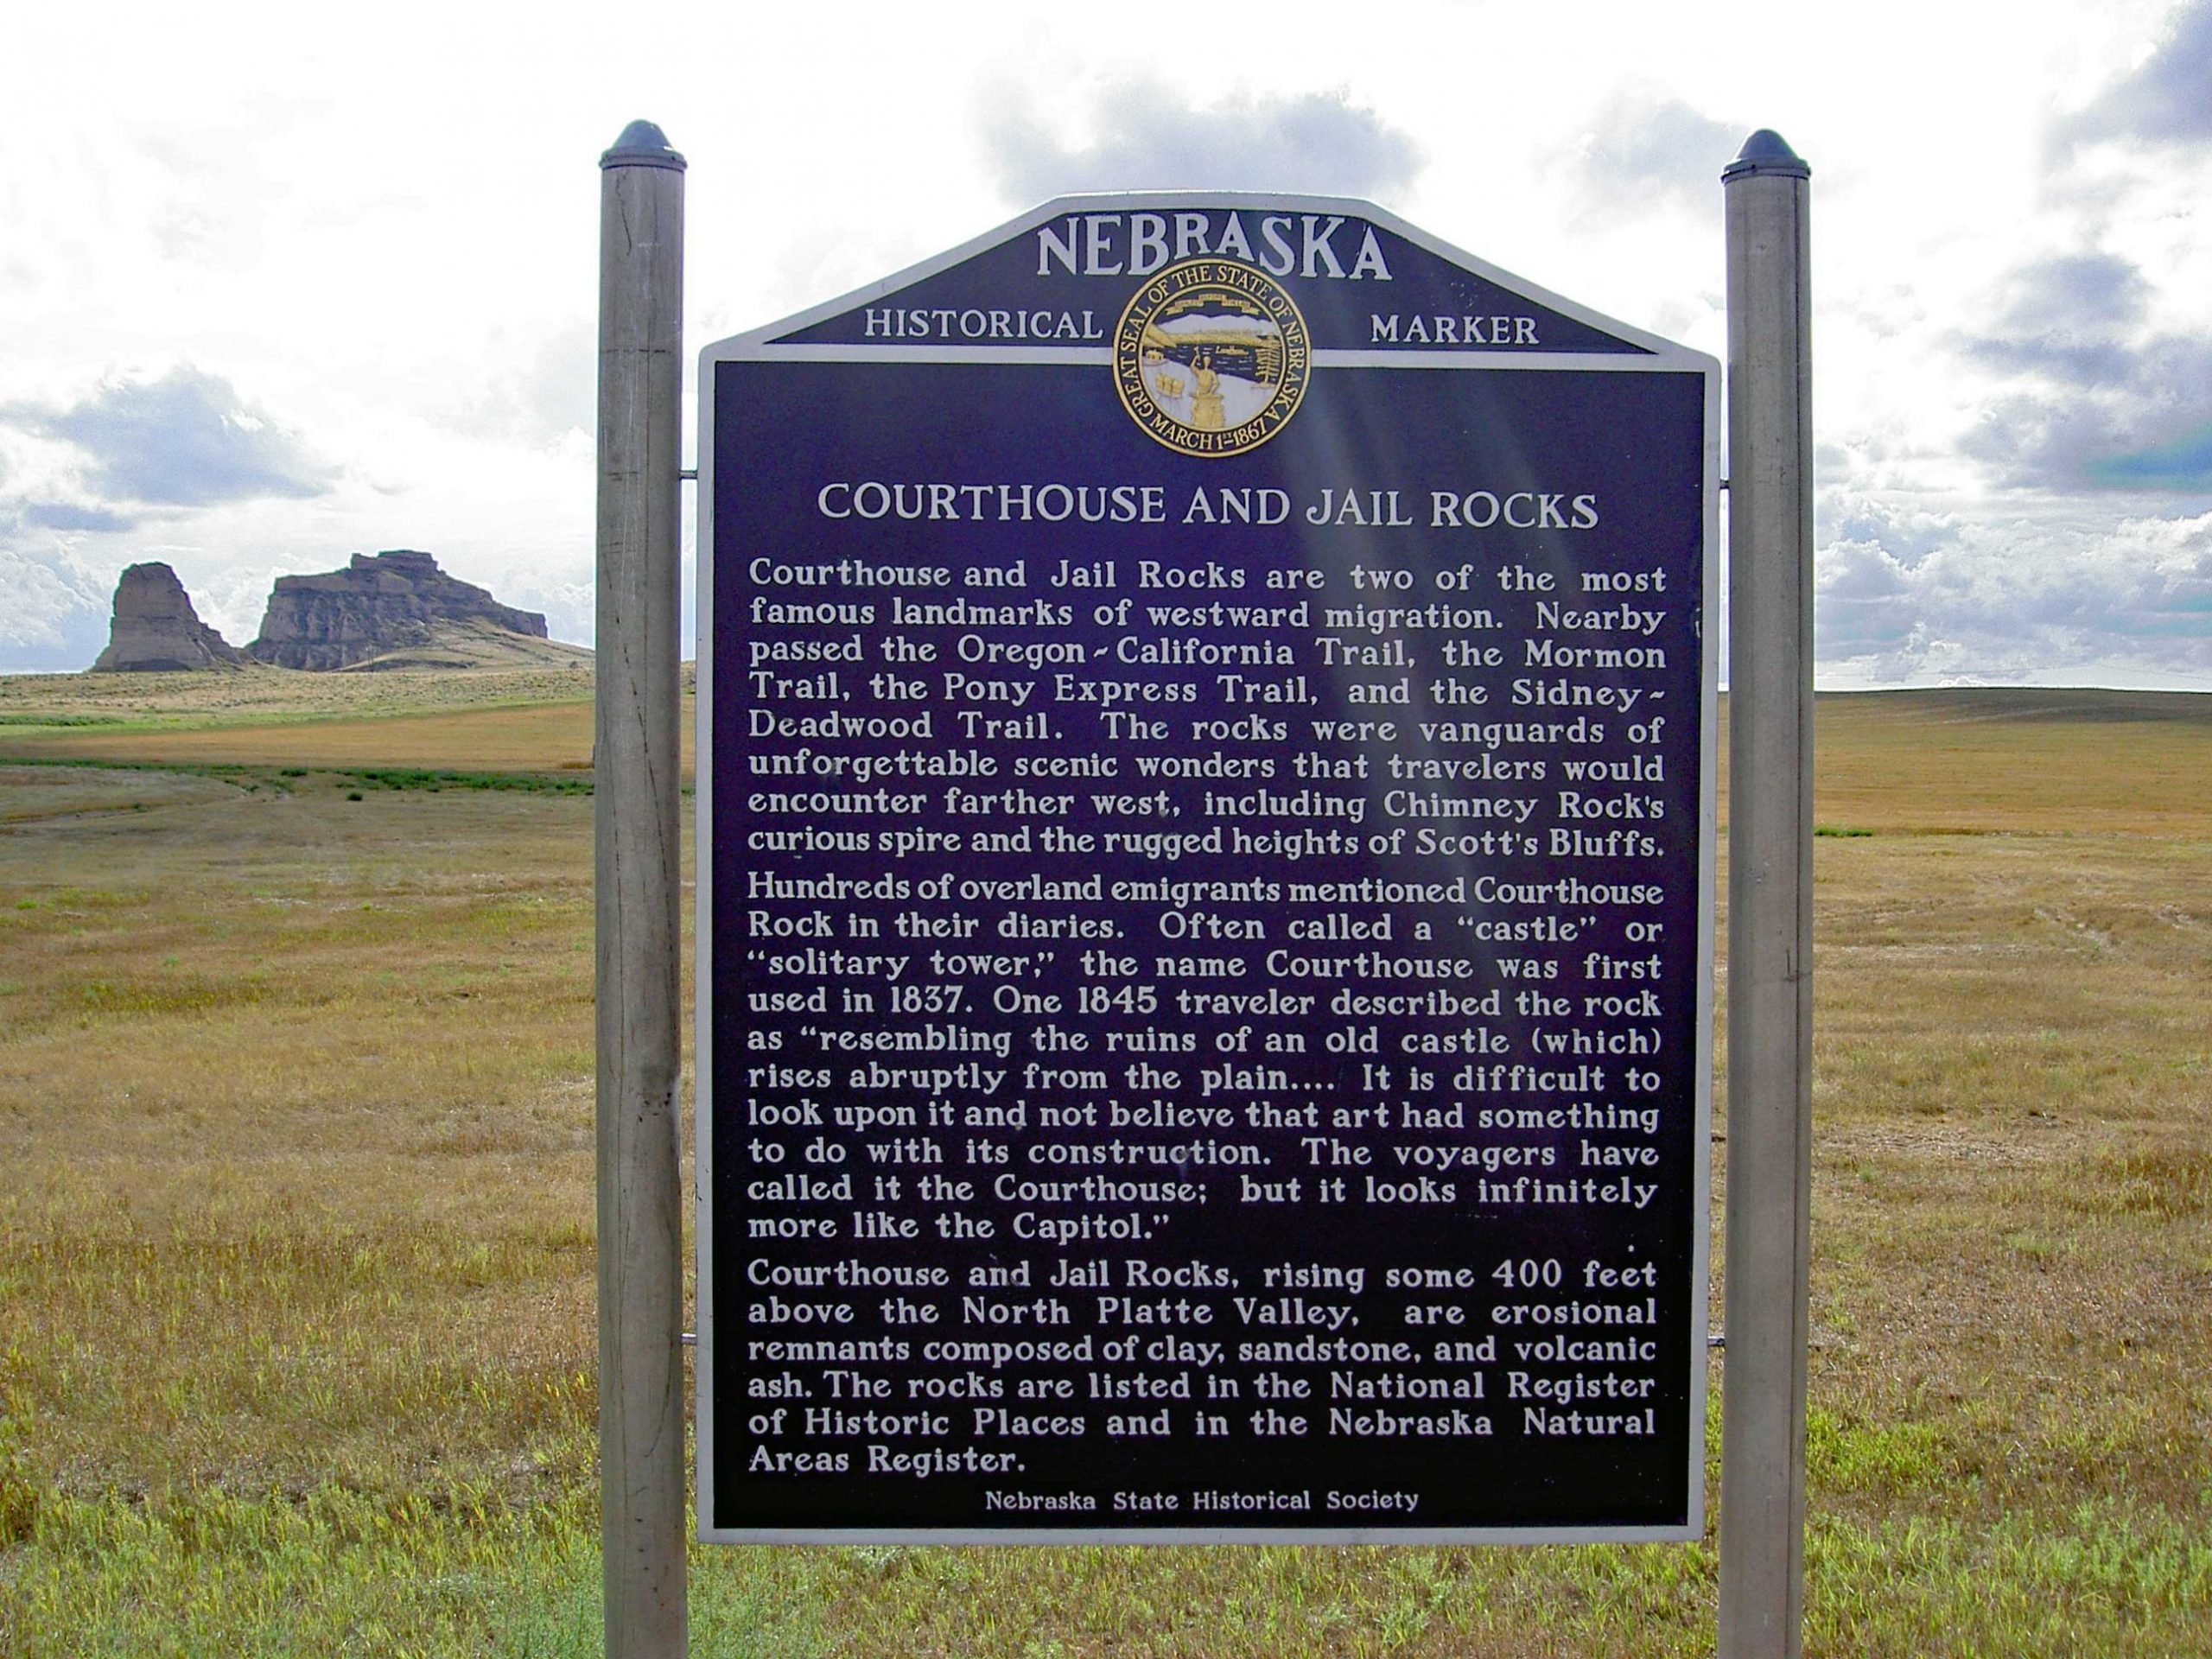 Jail and Courthouse Rocks